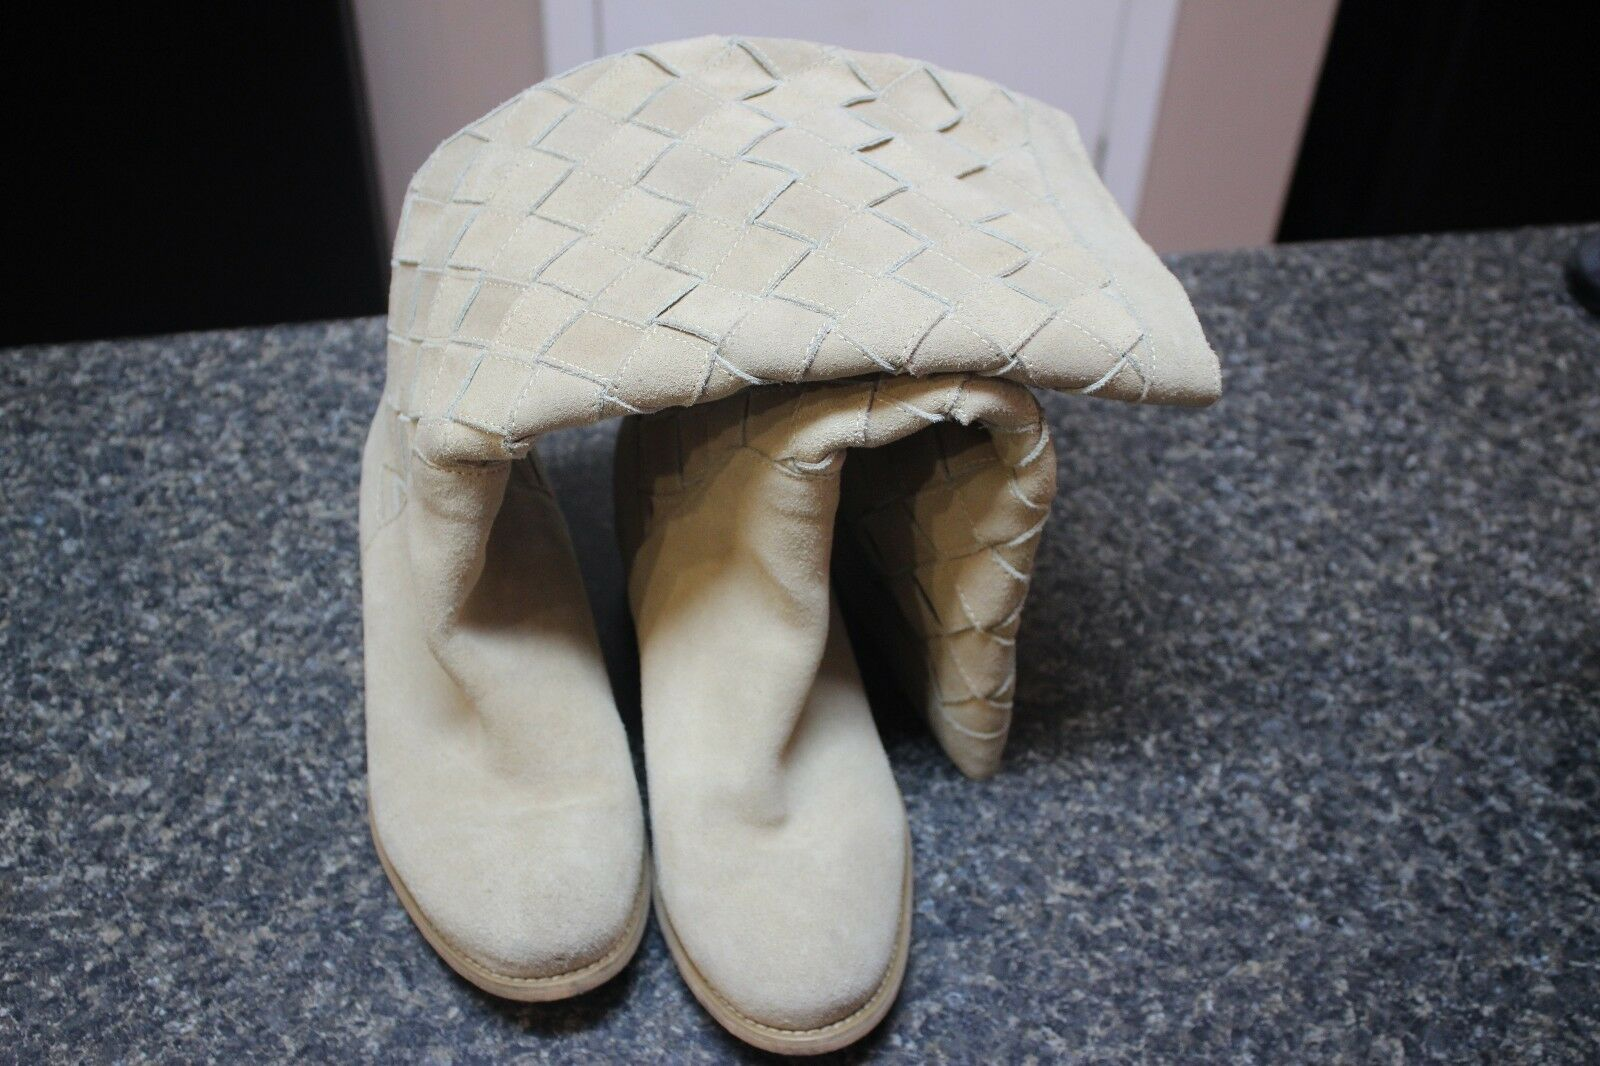 Suede Boots Tan Stacked Heel Size 8.5 Good Condition Target boots 8.5 LOT